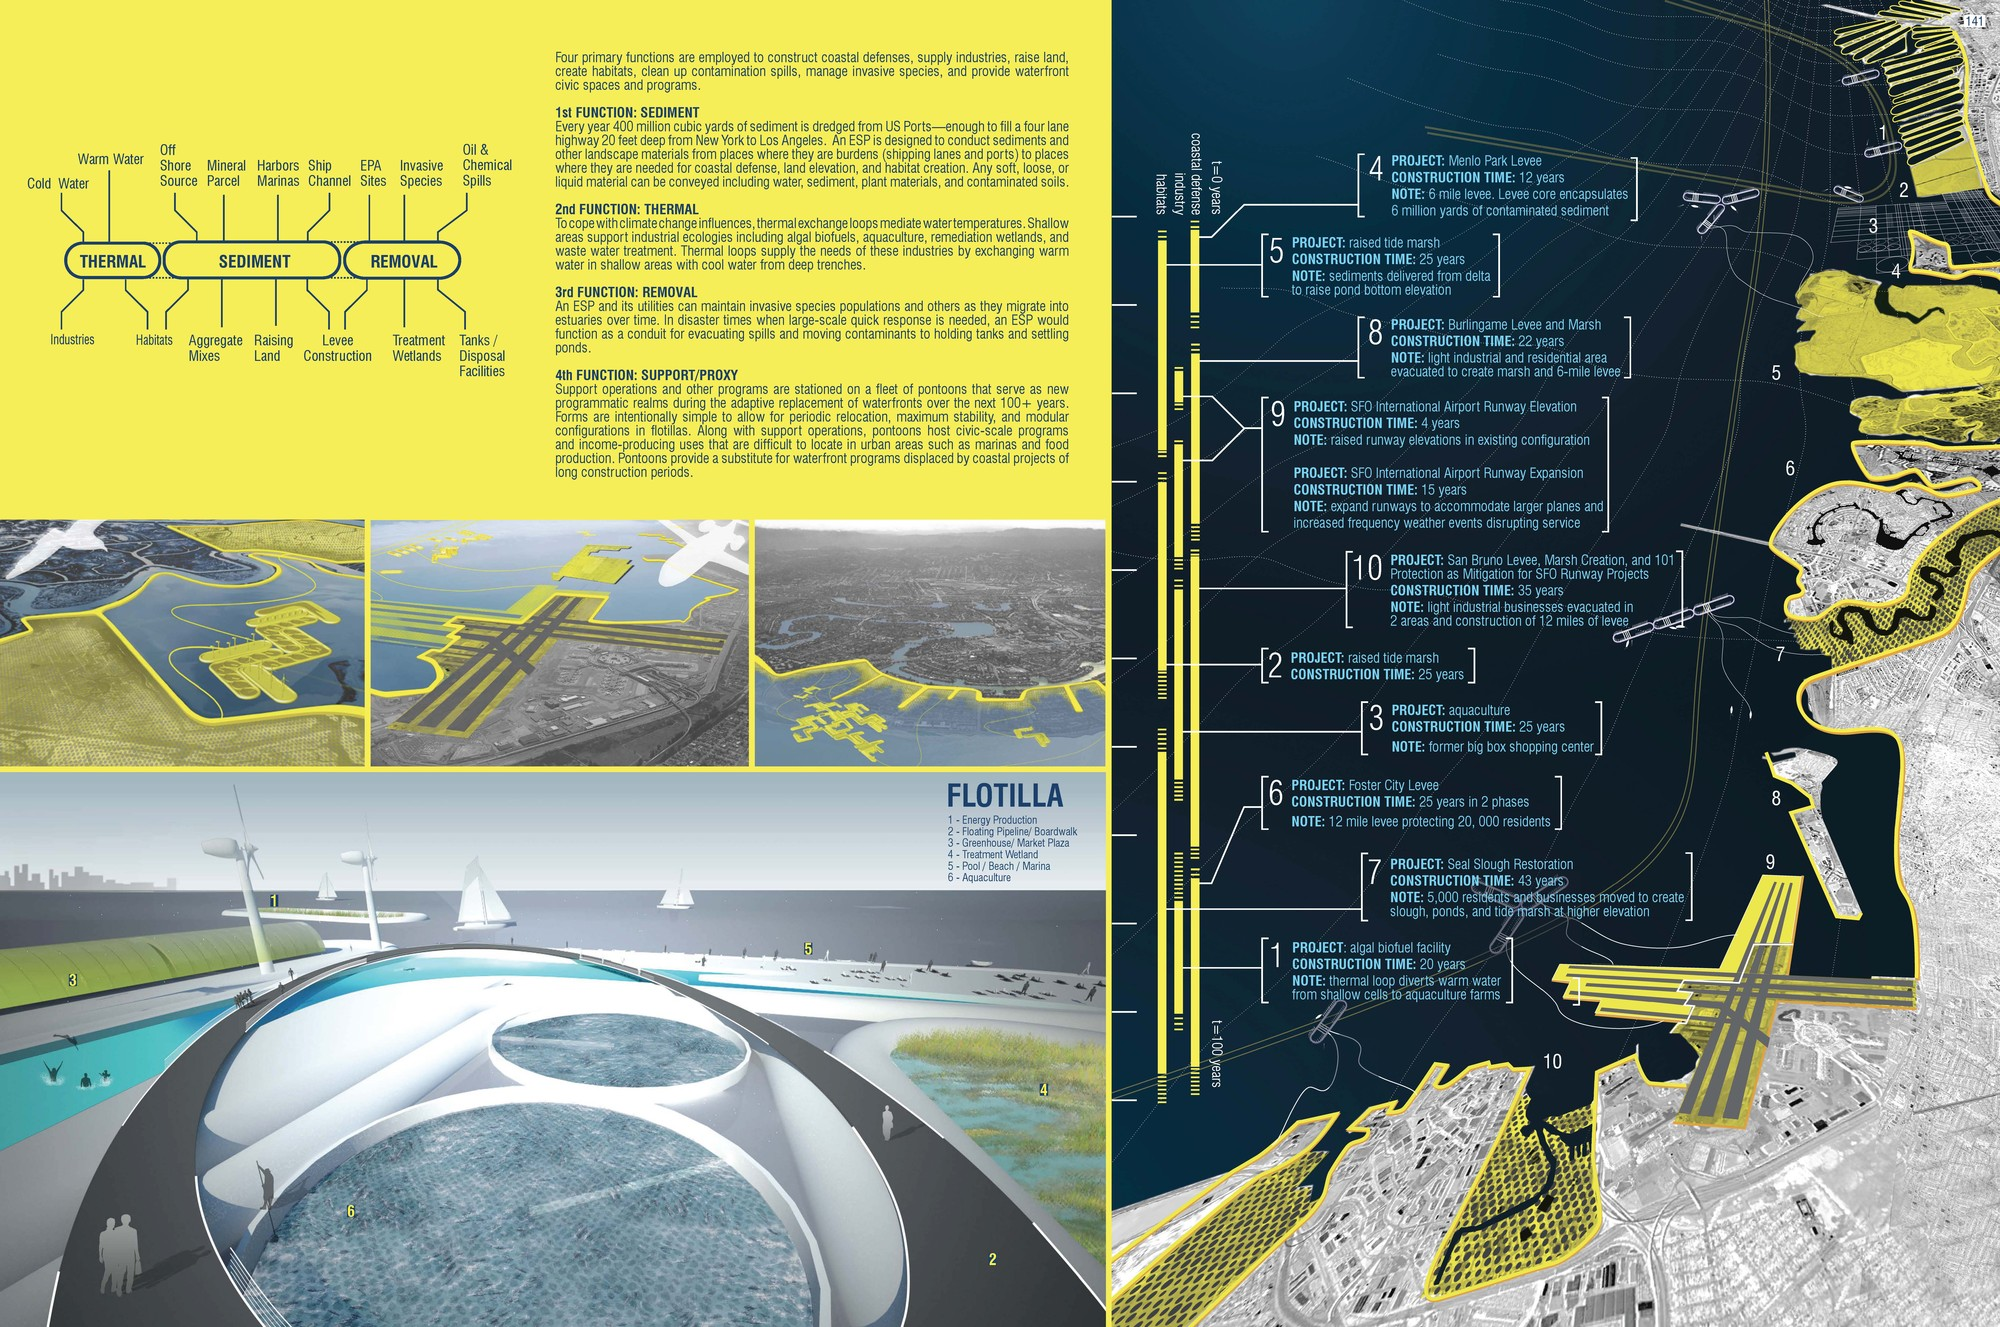 ESP//Estuary Services Pipeline. Image Courtesy of ONE Prize